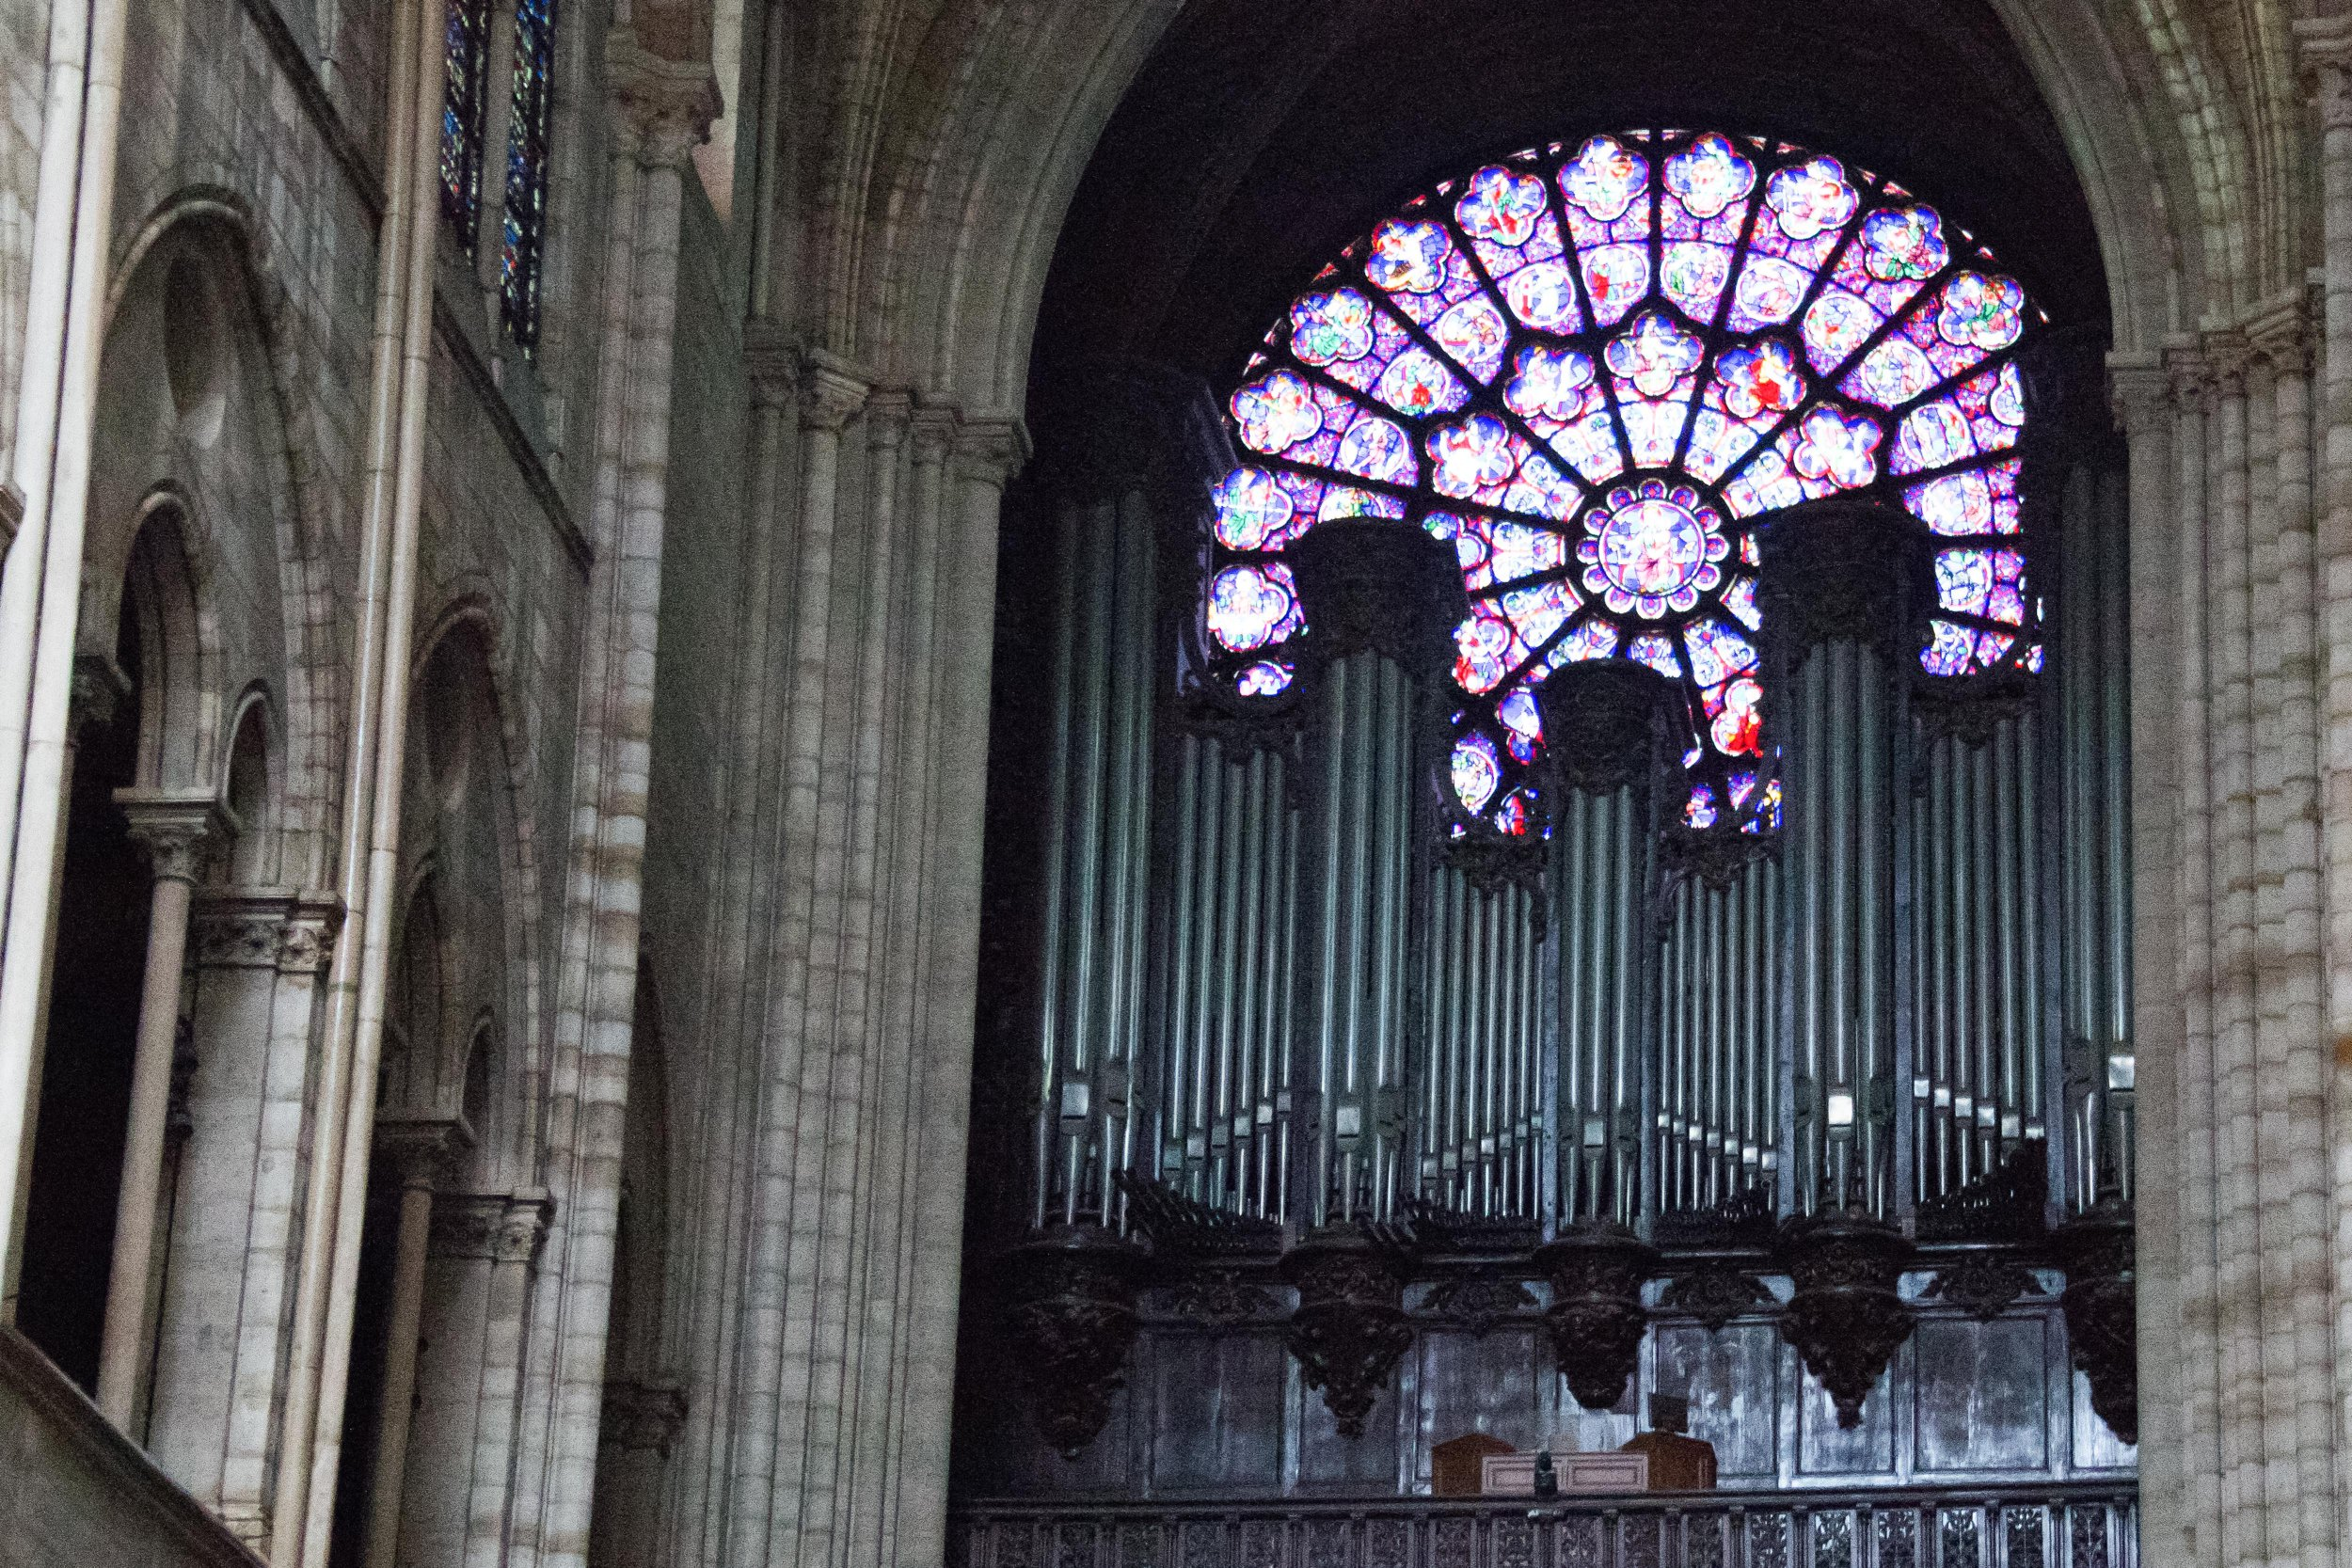 """ABACA Press via Press Association Images. EMBARGOED FOR WEB AND APPS IN FRANCE UNTIL MAY 1, 2019 - This general view shows the undamaged organ inside the Notre-Dame-de Paris Cathedral in Paris on April 16, 2019, a day after a fire that devastated the building in the centre of the French capital. French President Emmanuel Macron vowed on April 16 to rebuild Notre-Dame cathedral """"within five years"""", after a fire which caused major damage to the 850-year-old Paris landmark. Photo by Amaury Blin/ABACAPRESS.COM"""